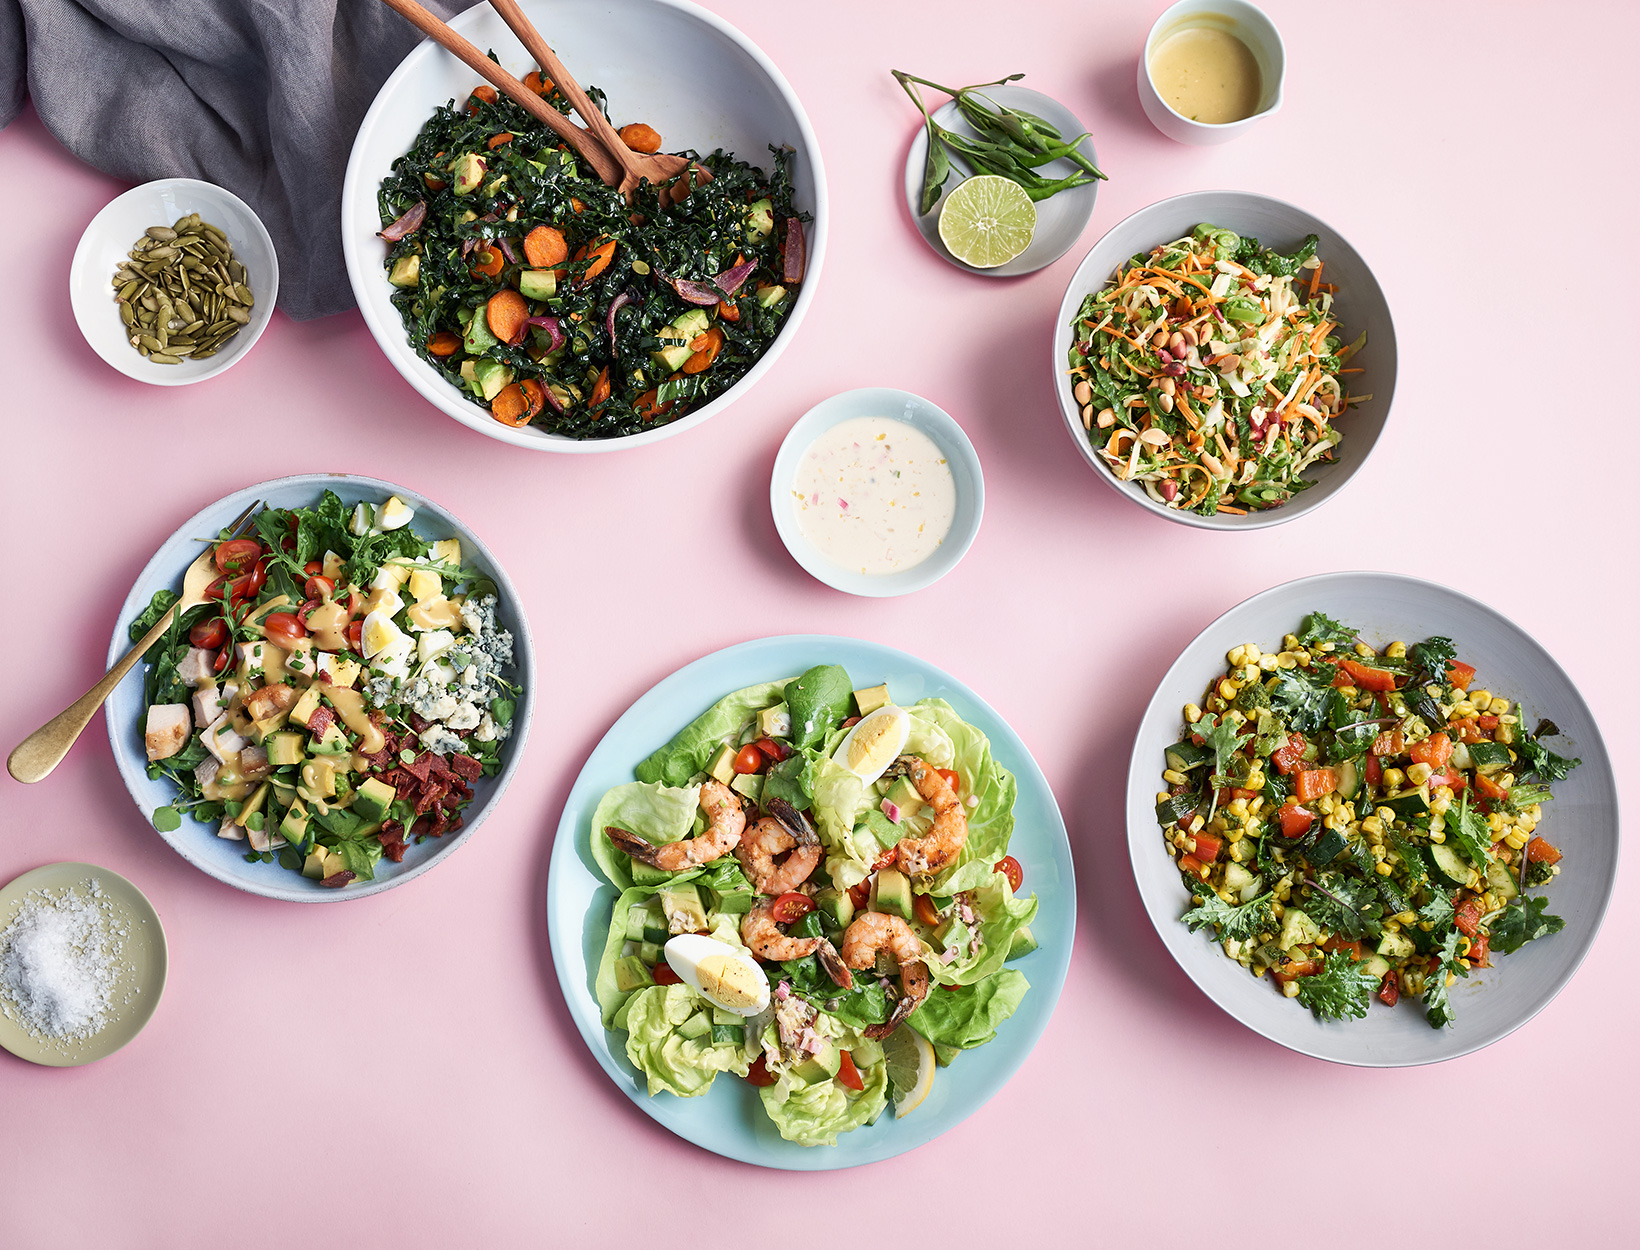 Refreshingly Simple Salad Ideas for When It's Hot Out